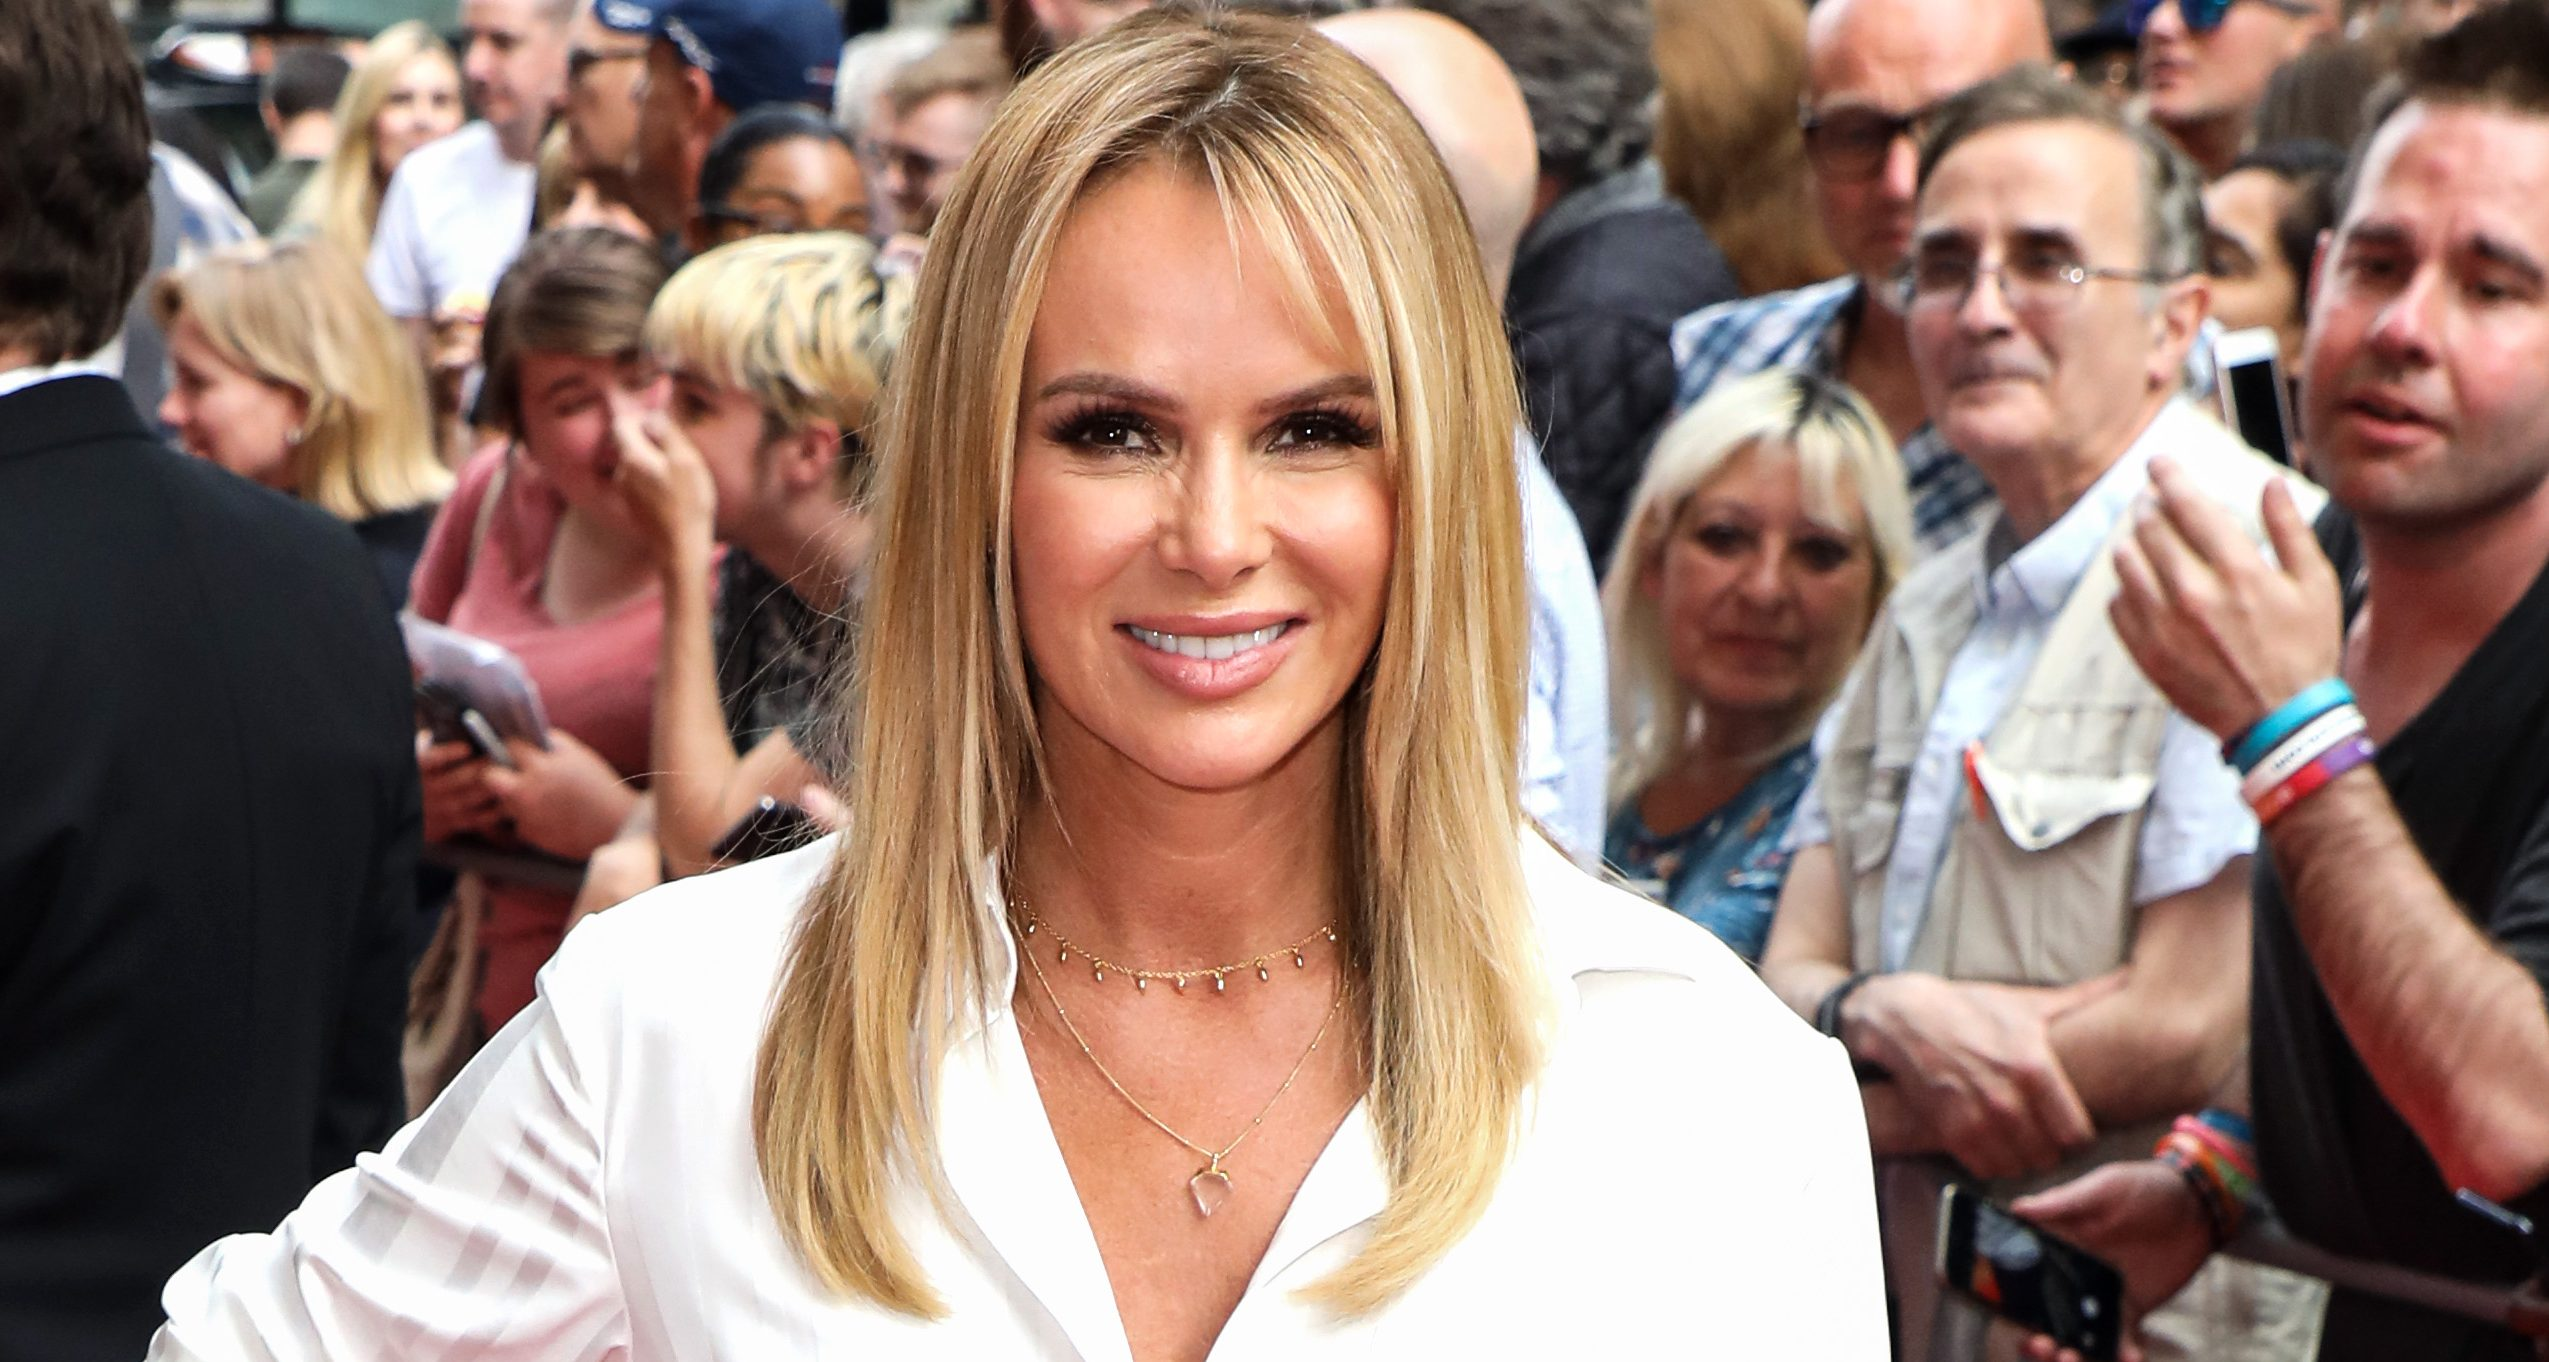 Amanda Holden says BGT 'liberated her' after her split from Les Dennis